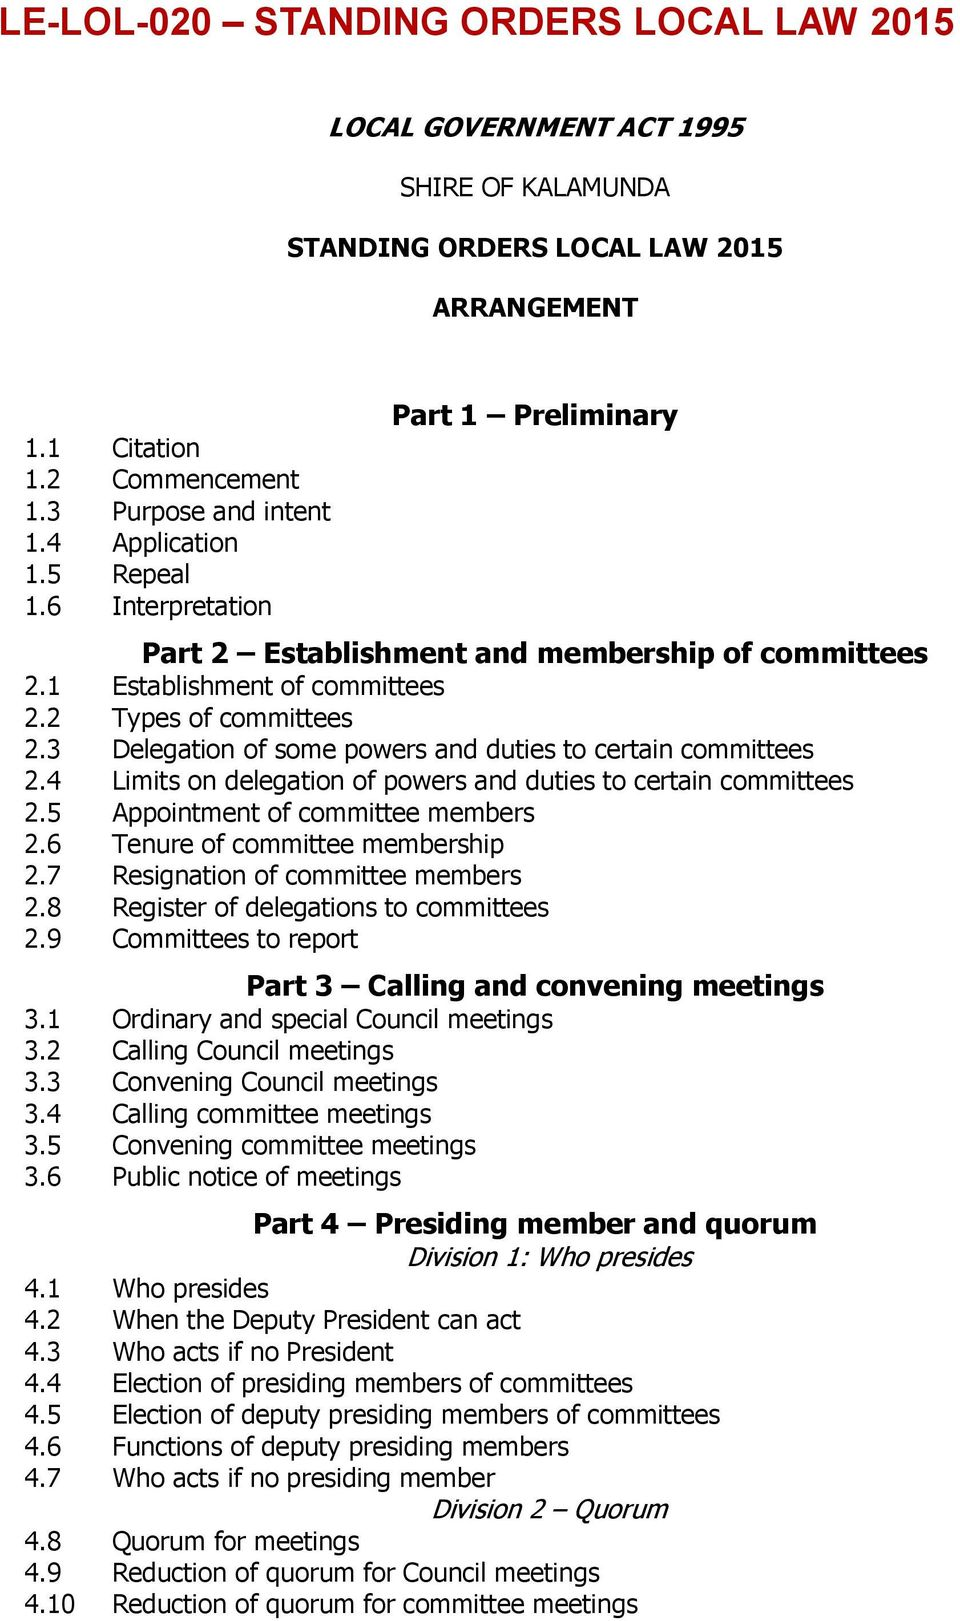 3 Delegation of some powers and duties to certain committees 2.4 Limits on delegation of powers and duties to certain committees 2.5 Appointment of committee members 2.